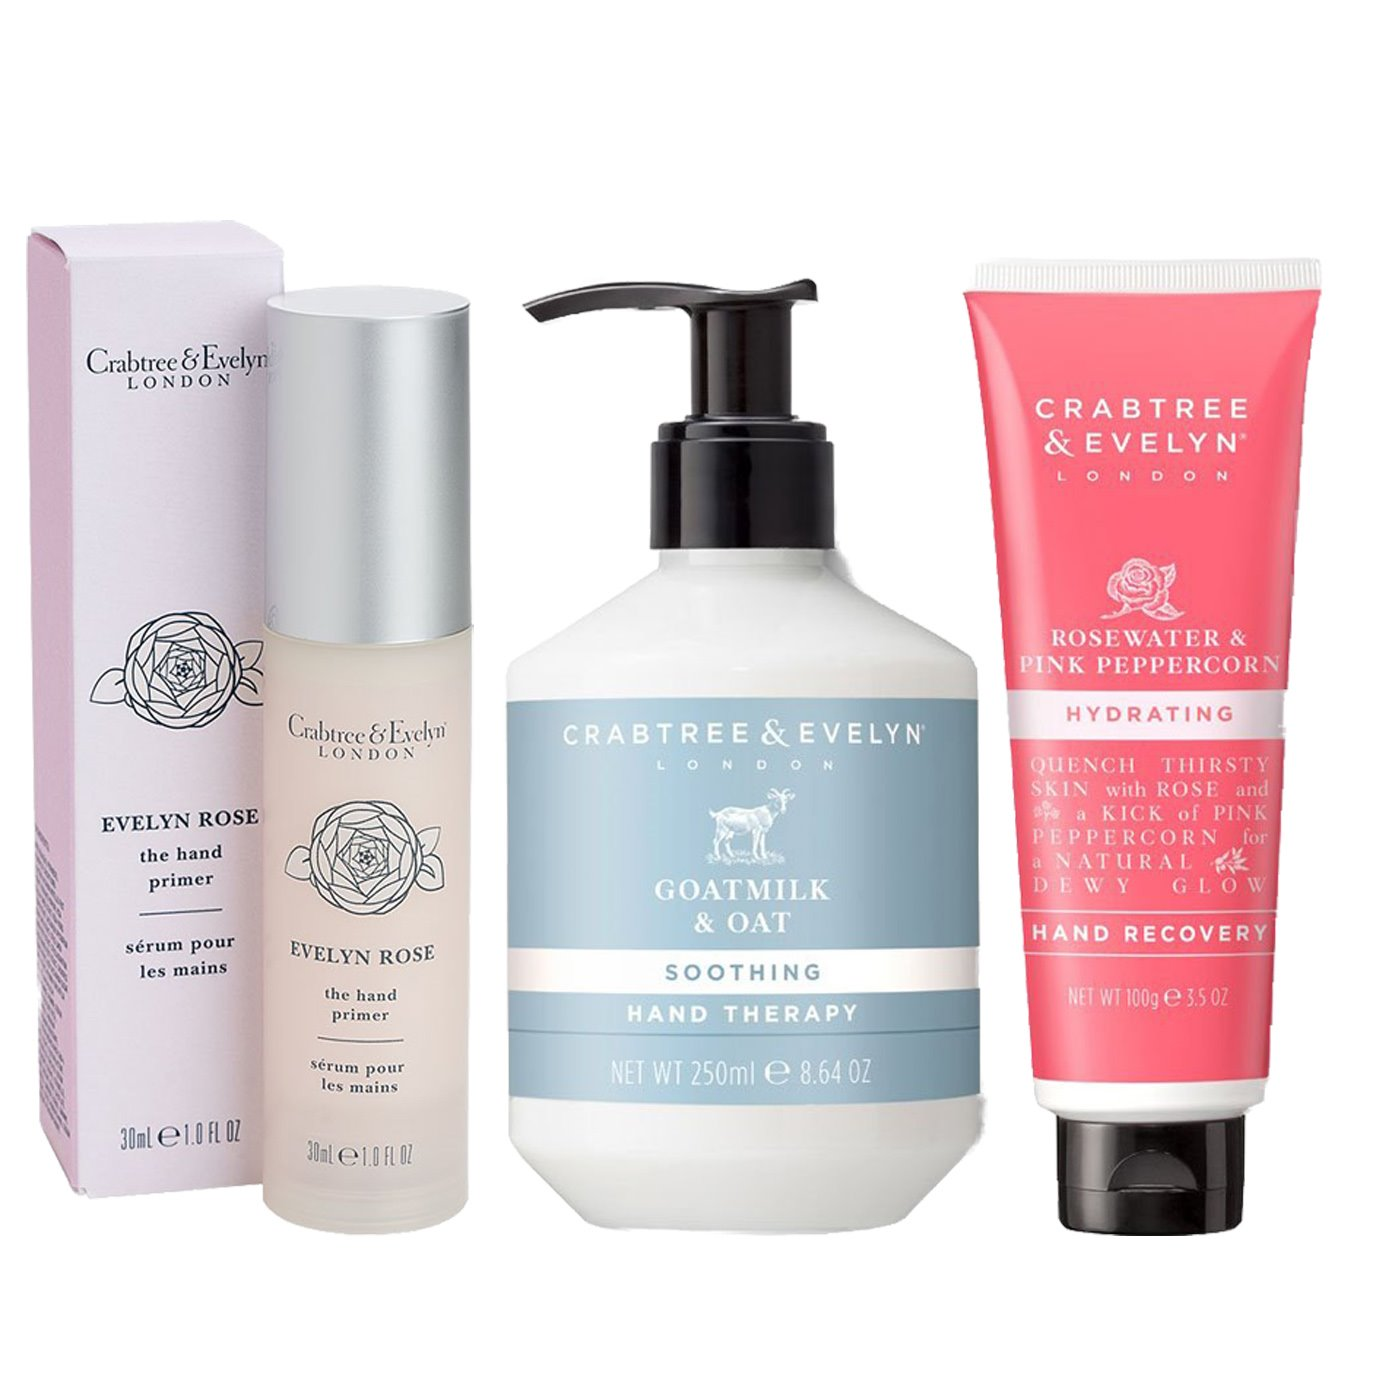 Hand Therapy Creams and Lotions